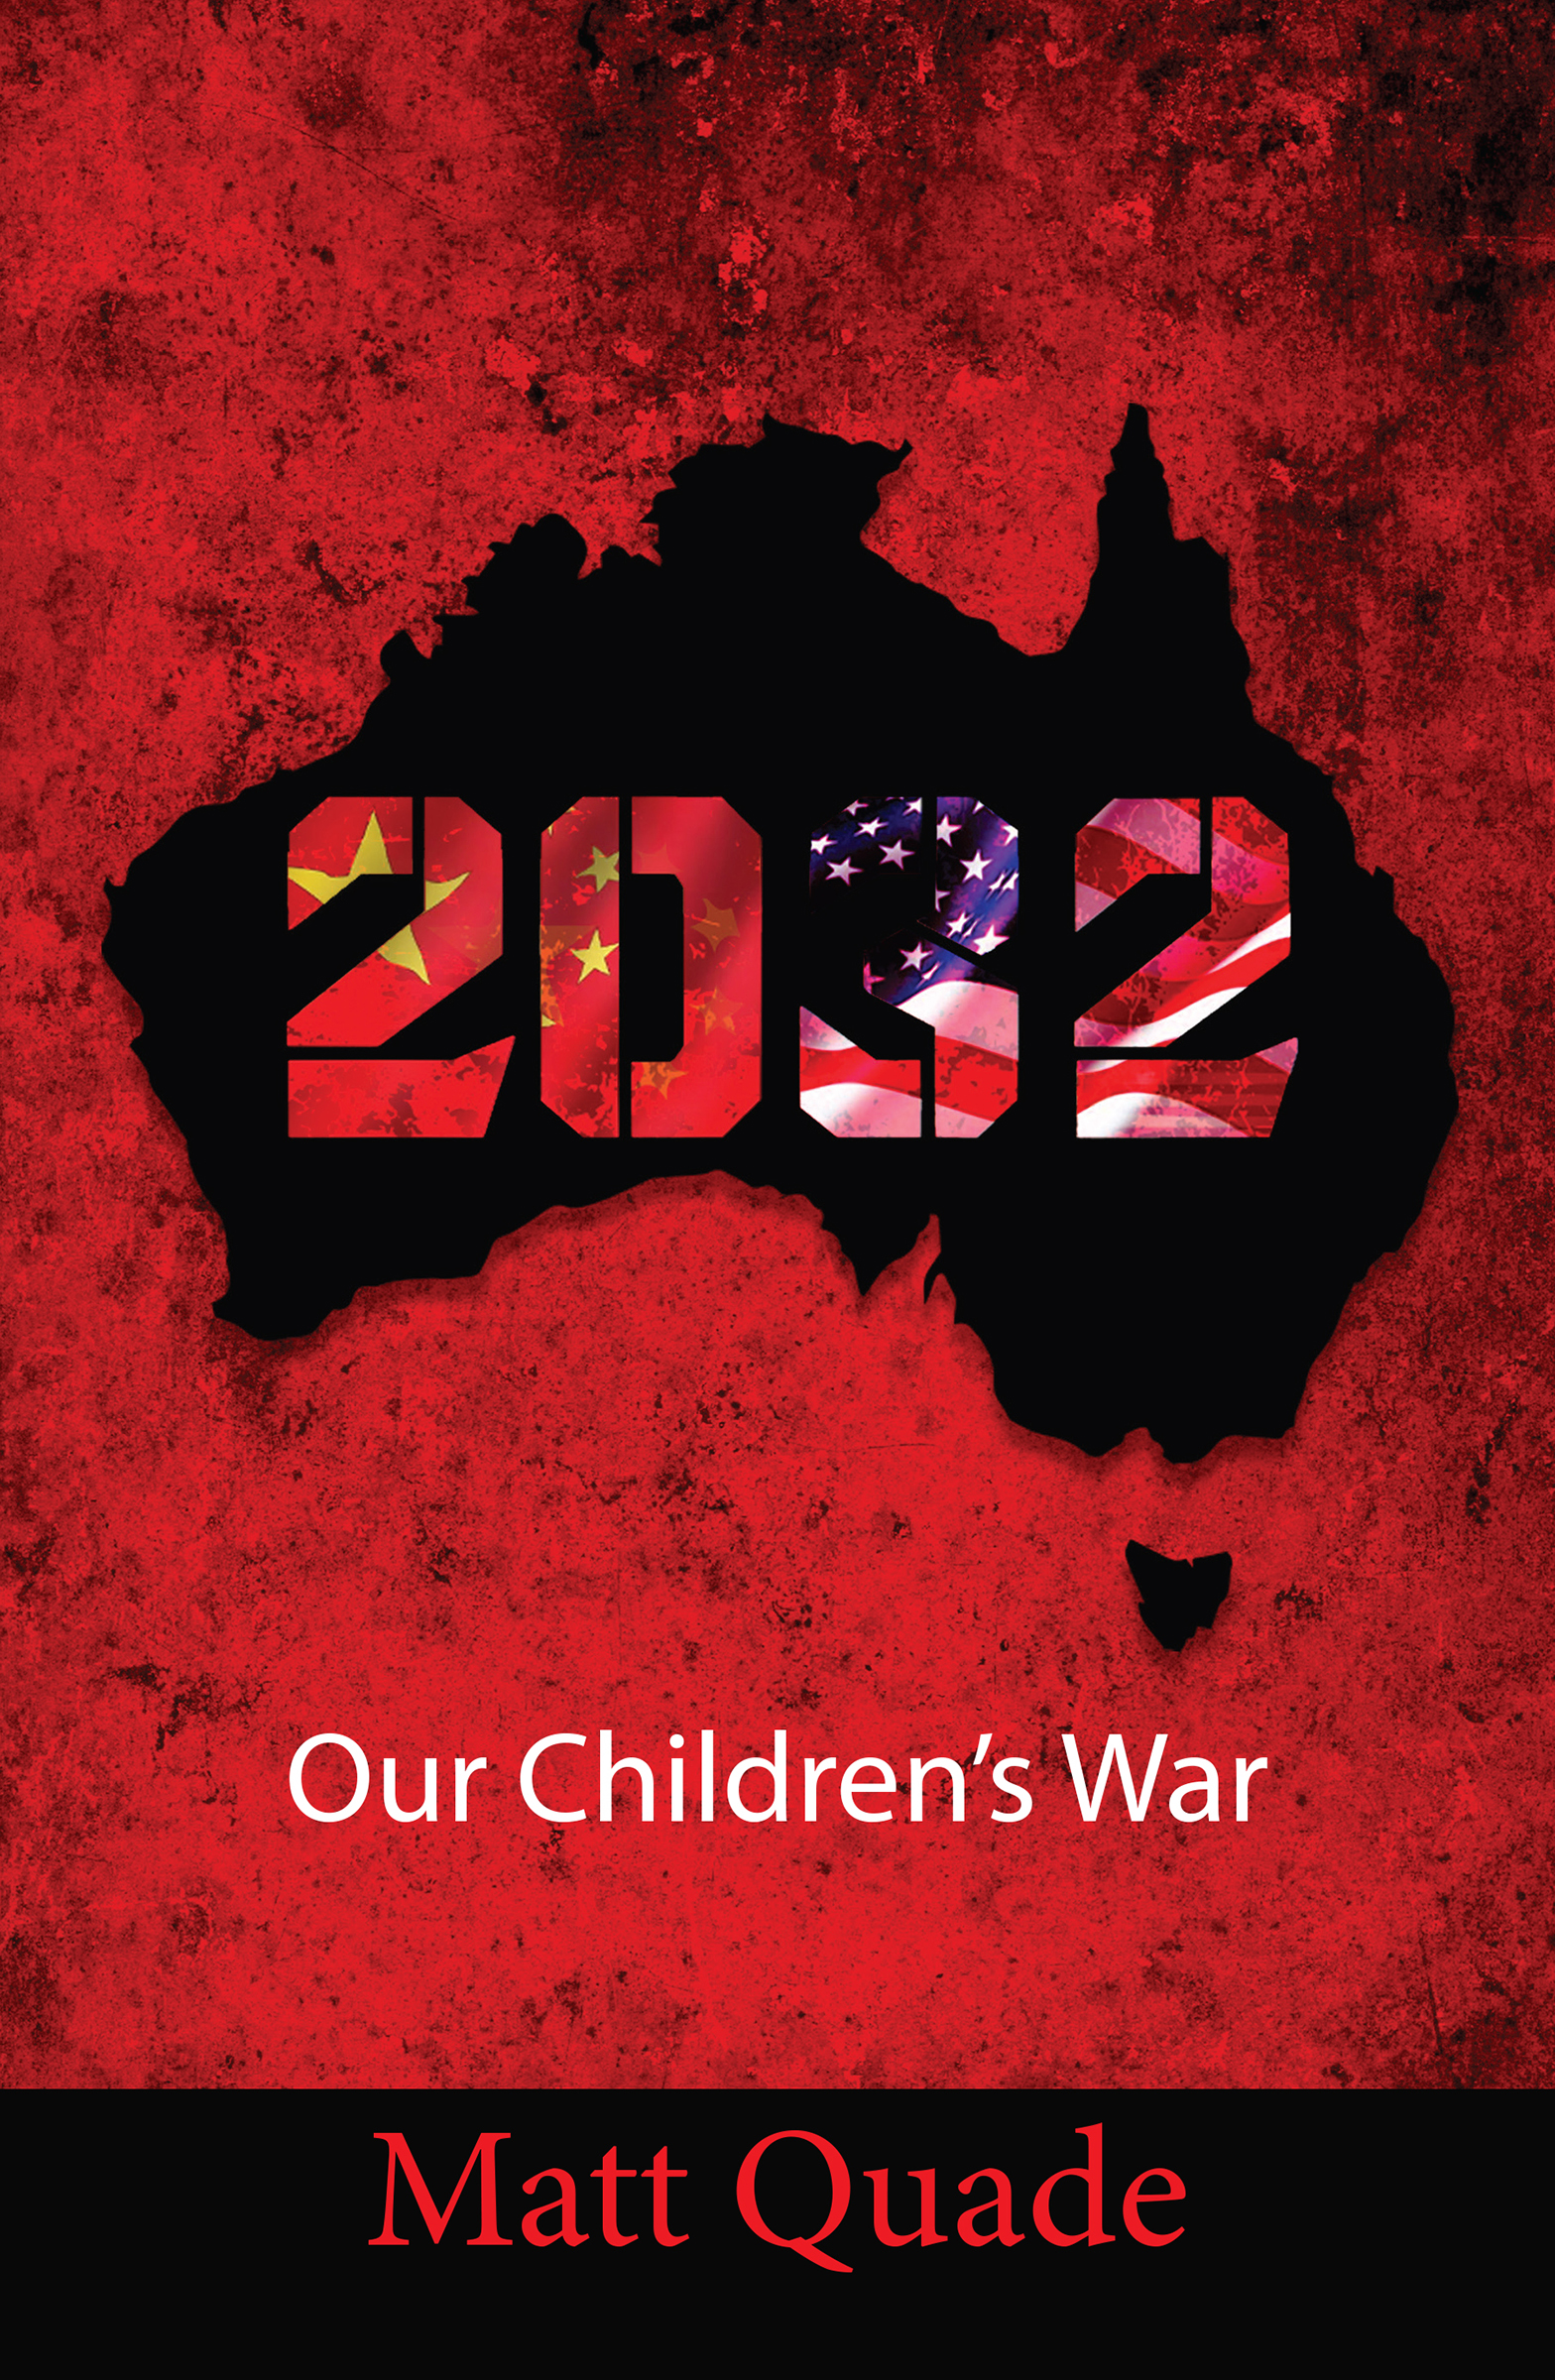 2032 Our Children's War